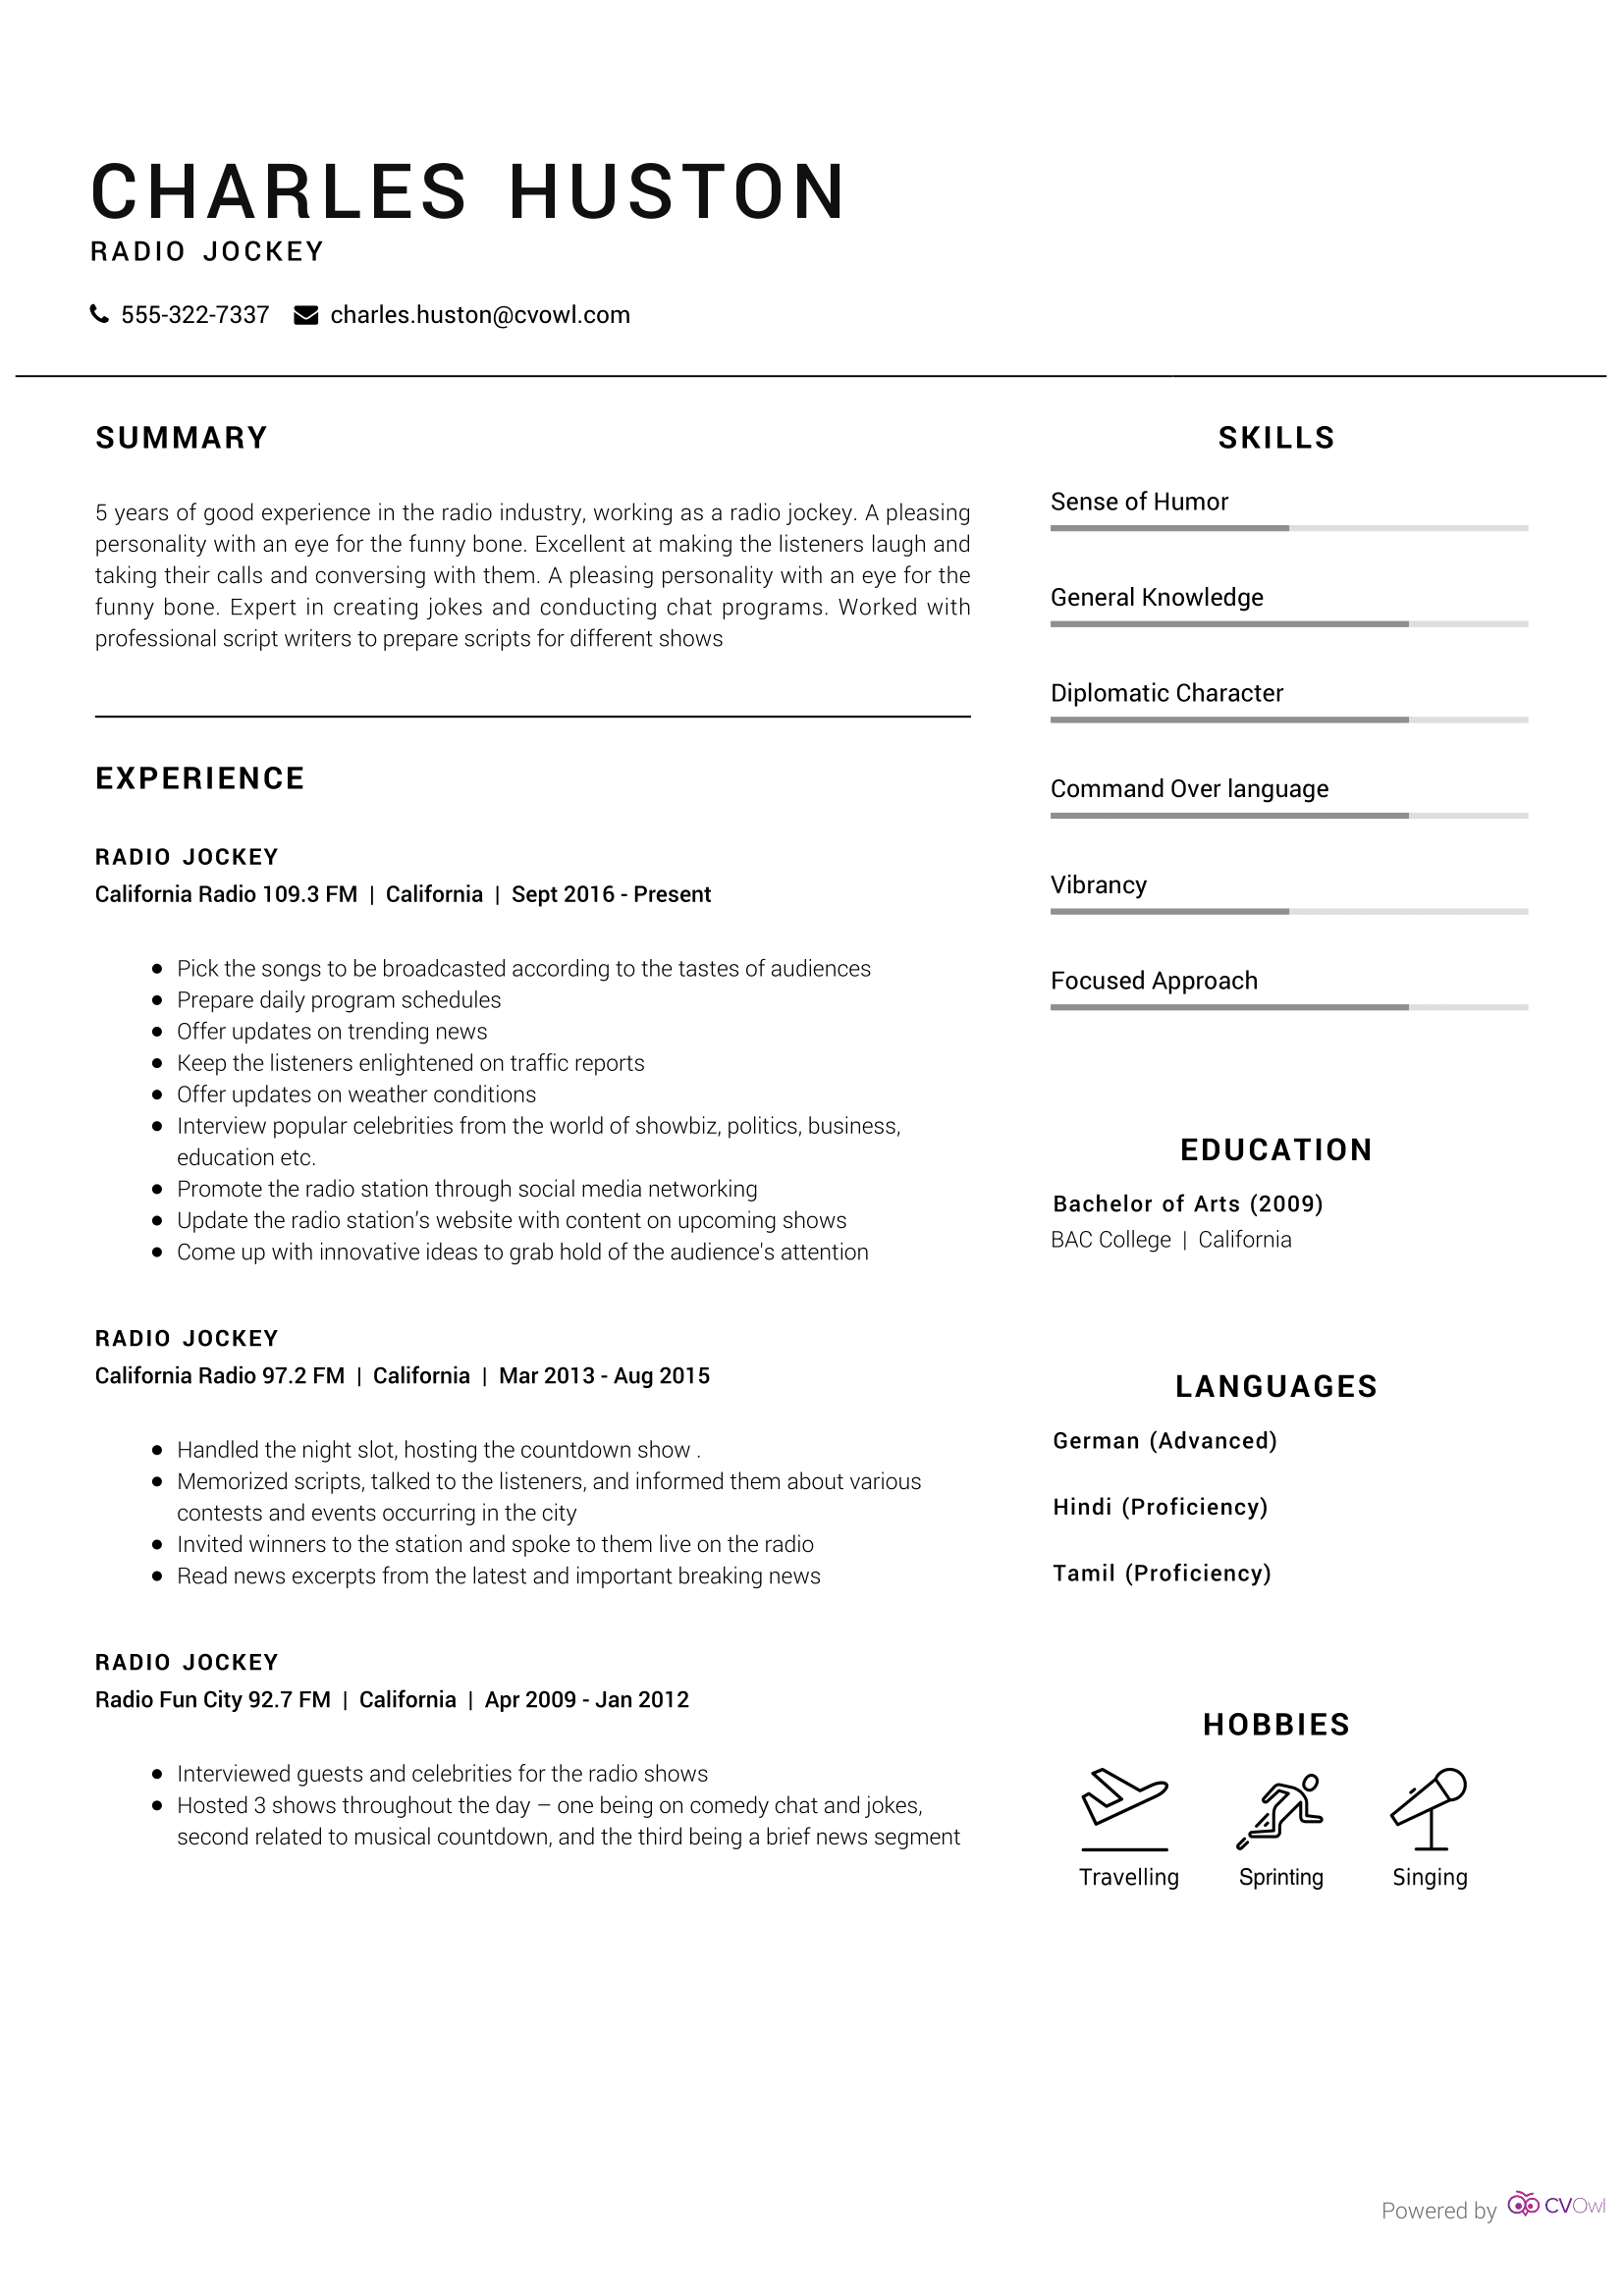 Radio Jockey Resume Sample Cv Owl